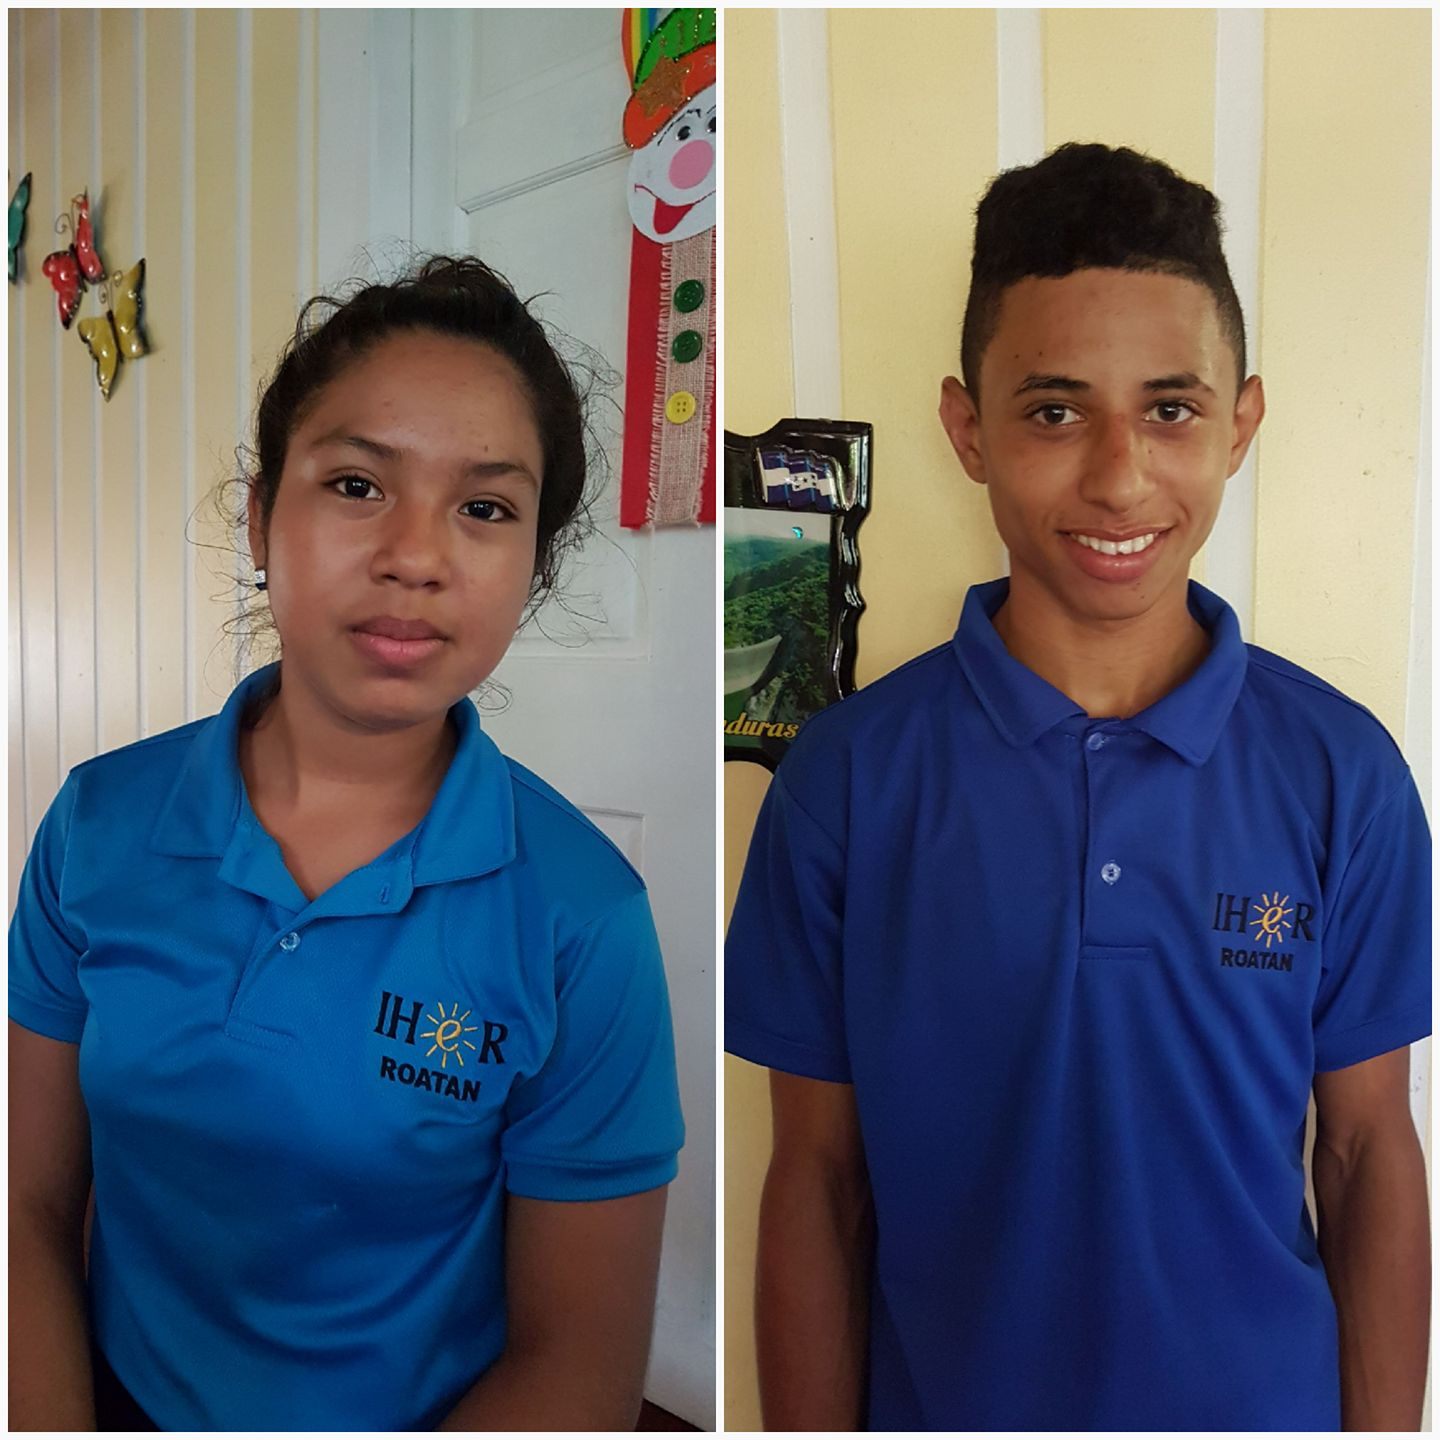 The same teenage boy and girl in school uniforms